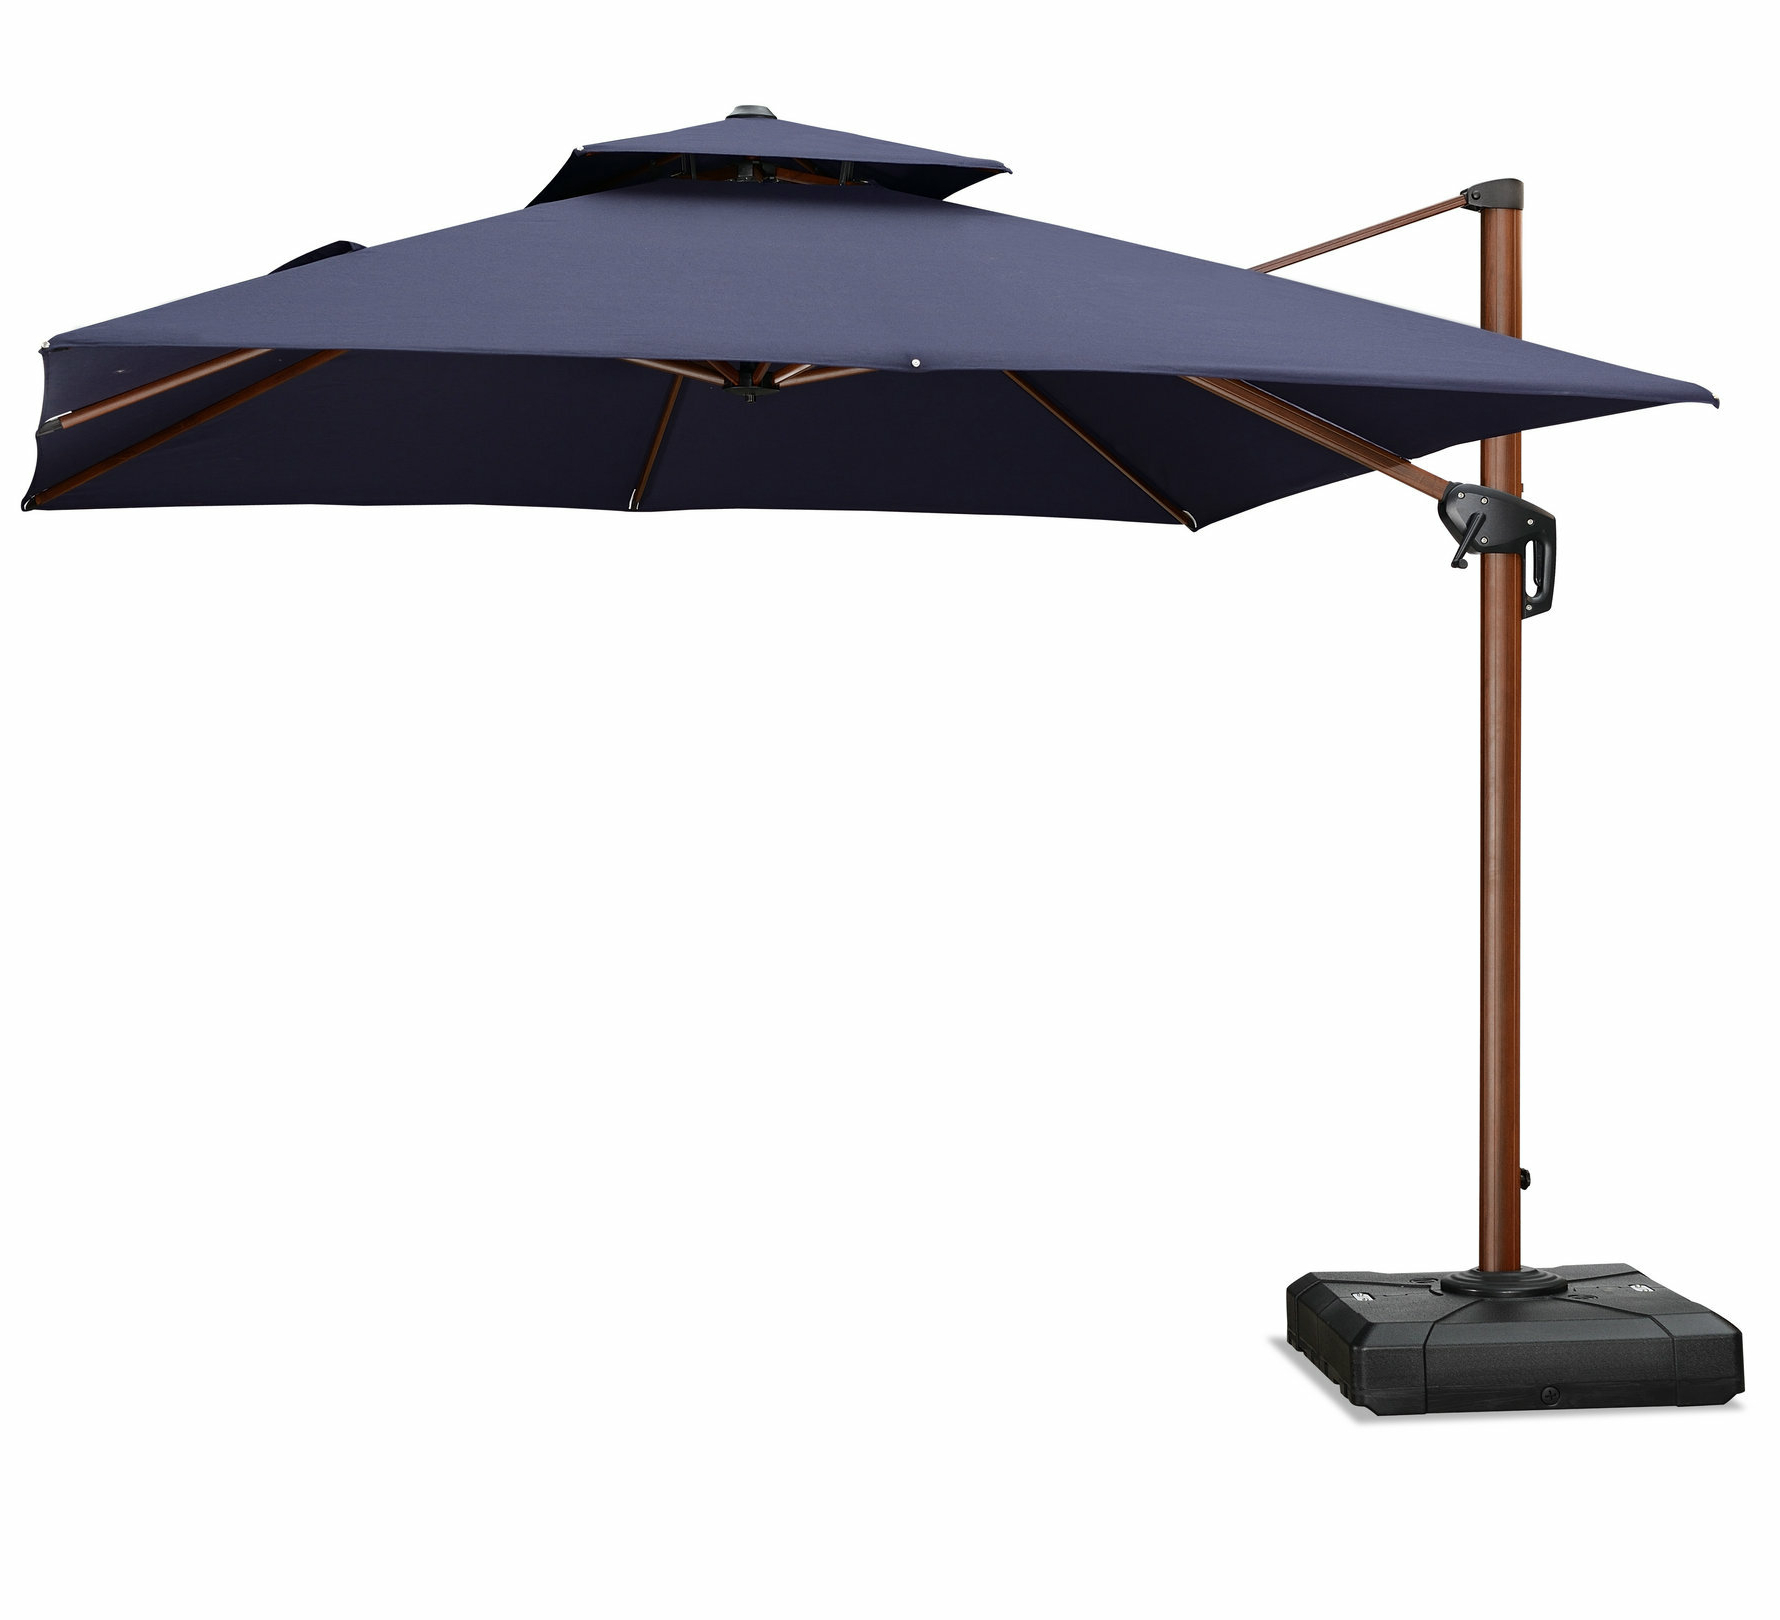 Windell Square Cantilever Umbrellas For Most Popular Waddell 10' Square Cantilever Umbrella (View 15 of 20)